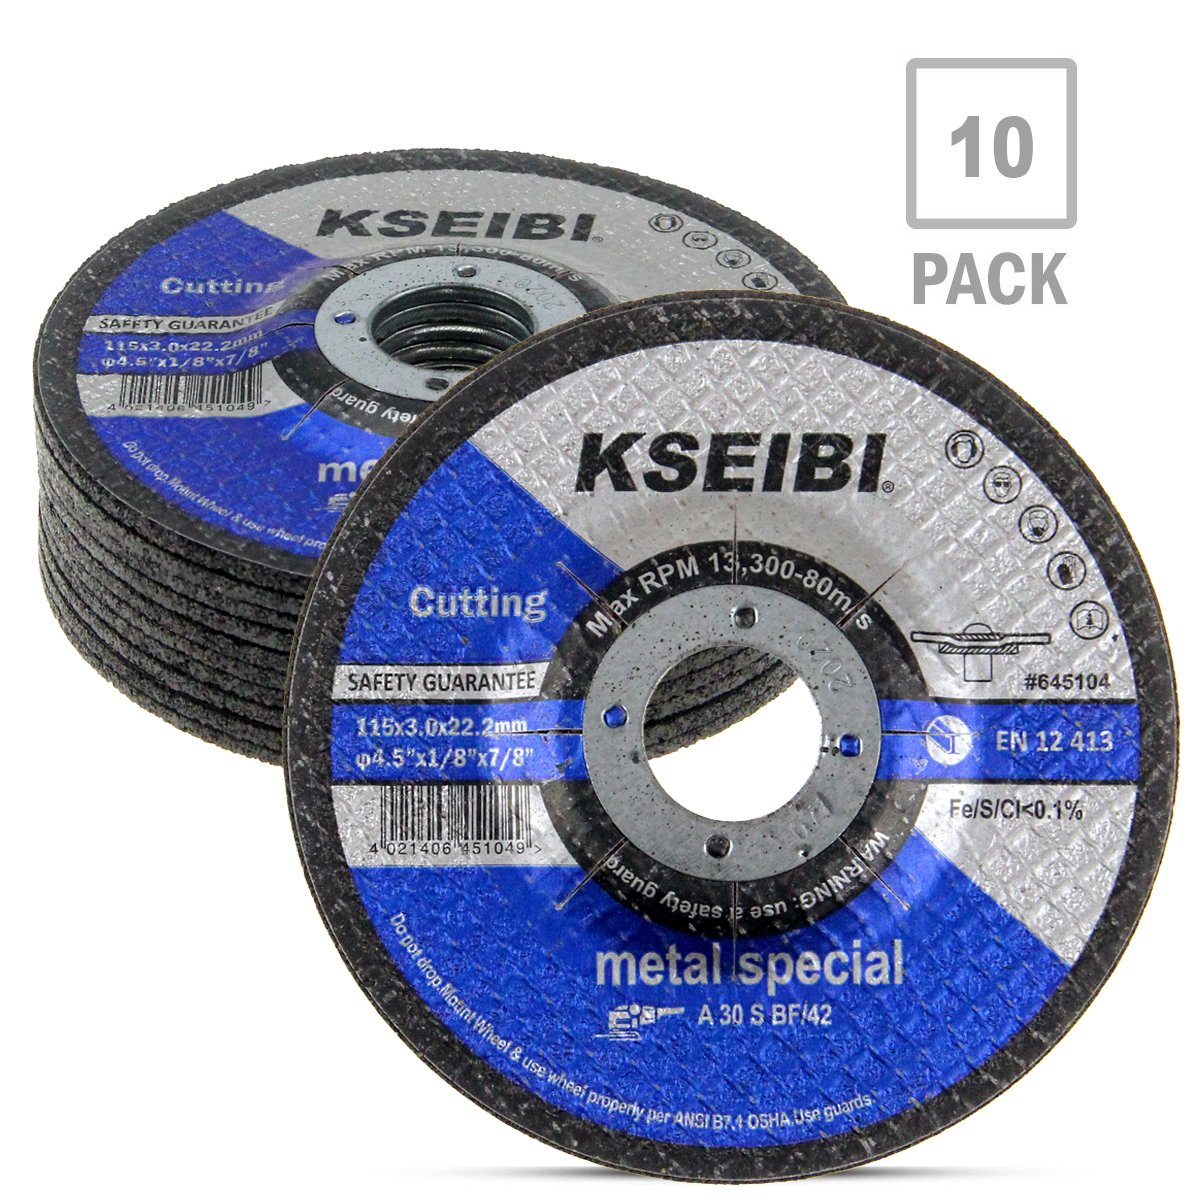 KSEIBI 645104 4-1/2-Inch by 1/8-Inch Metal Cutting and Grinding Disc Depressed Center Cut Off Grind Wheel, 7/8-Inch Arbor, 10-Pack